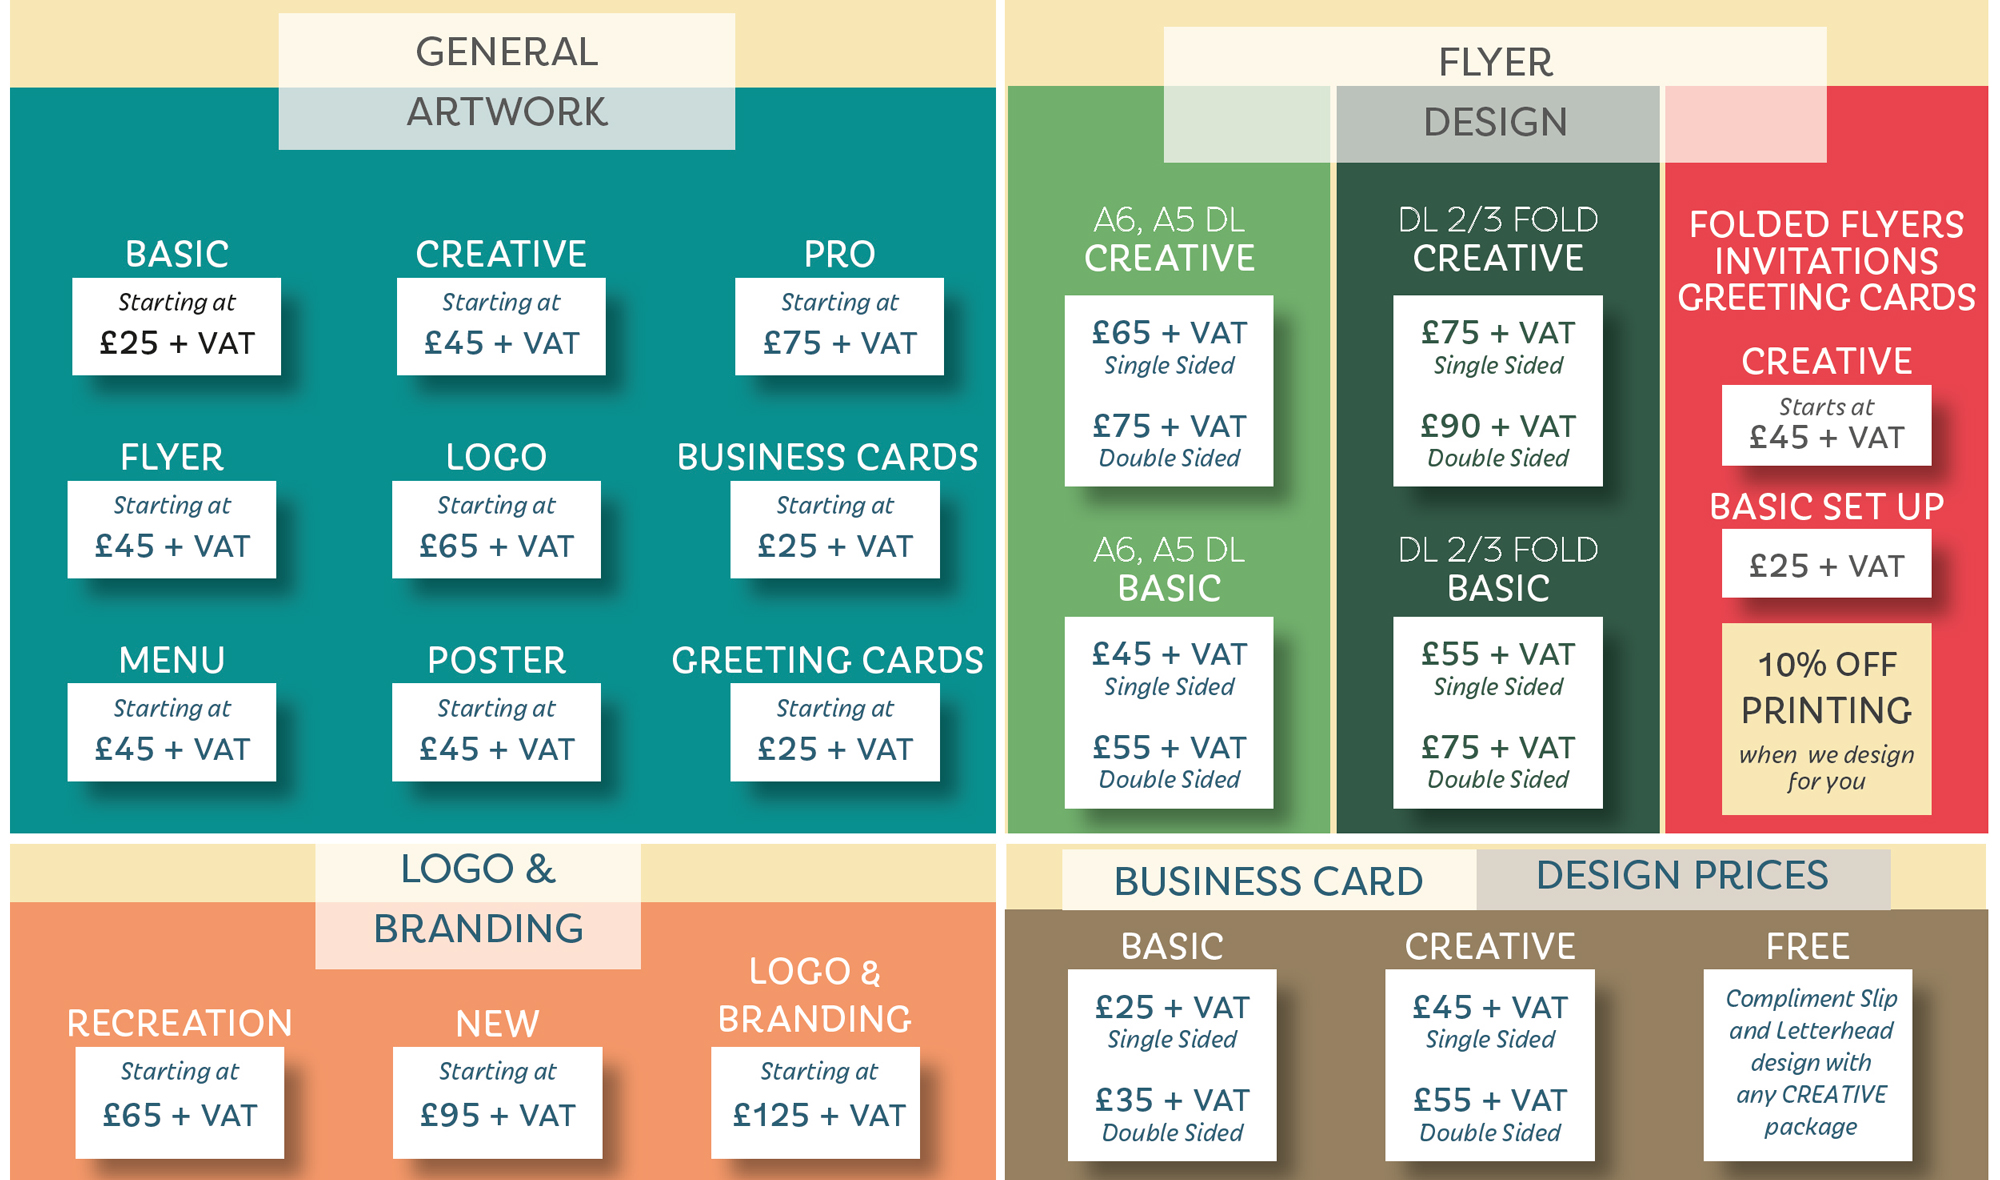 PRICE LIST - The Print Design